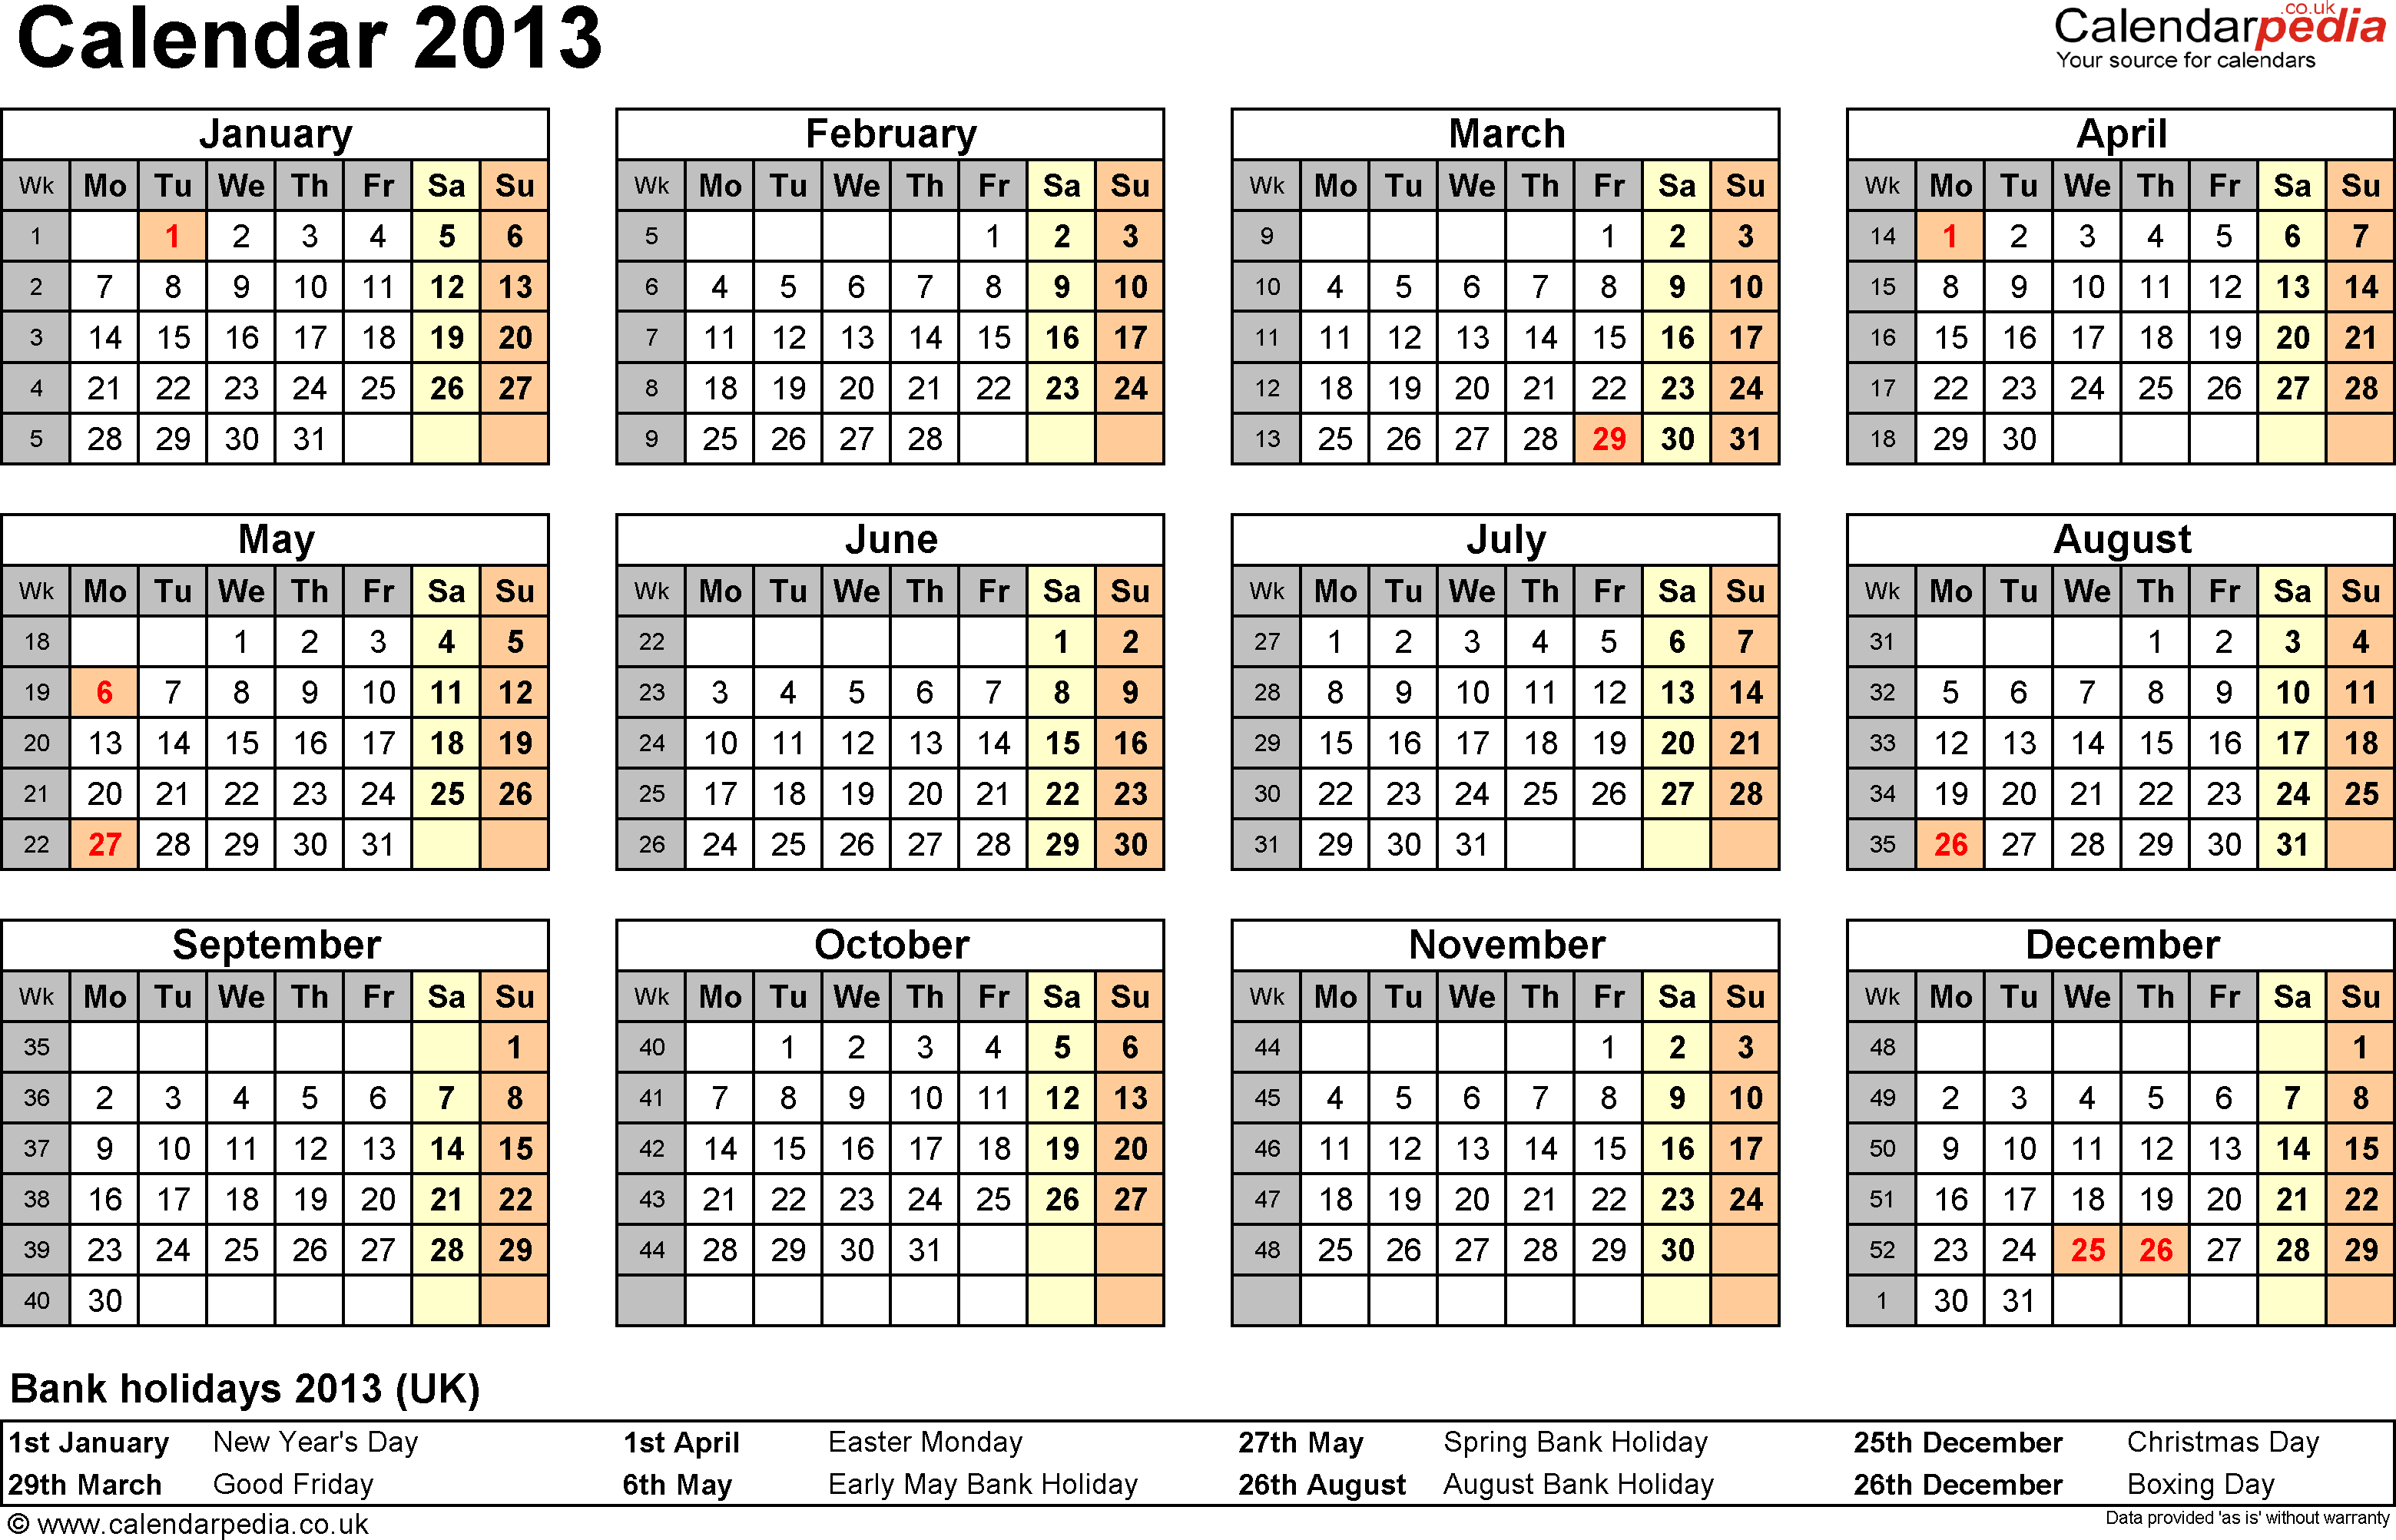 Download calendar 2013 as PNG file